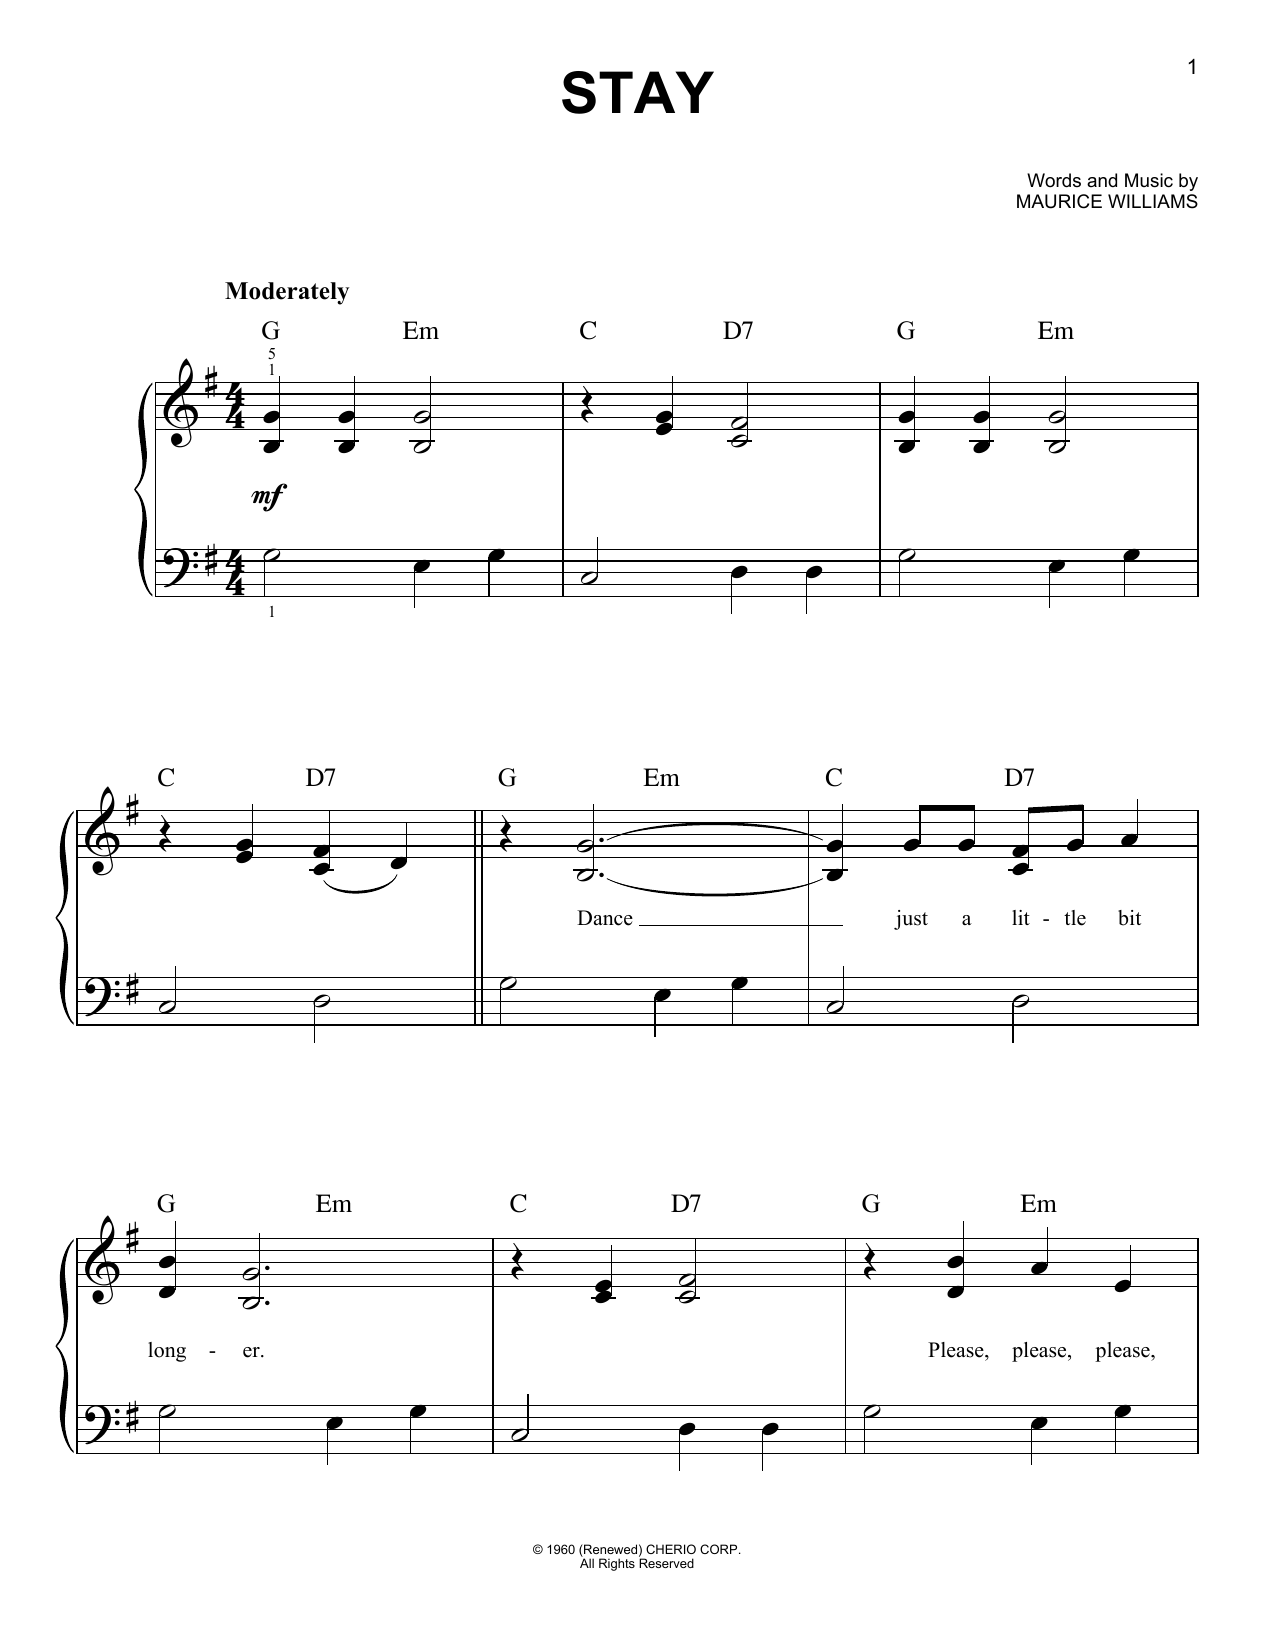 Sheet Music Digital Files To Print - Licensed Maurice Williams ...